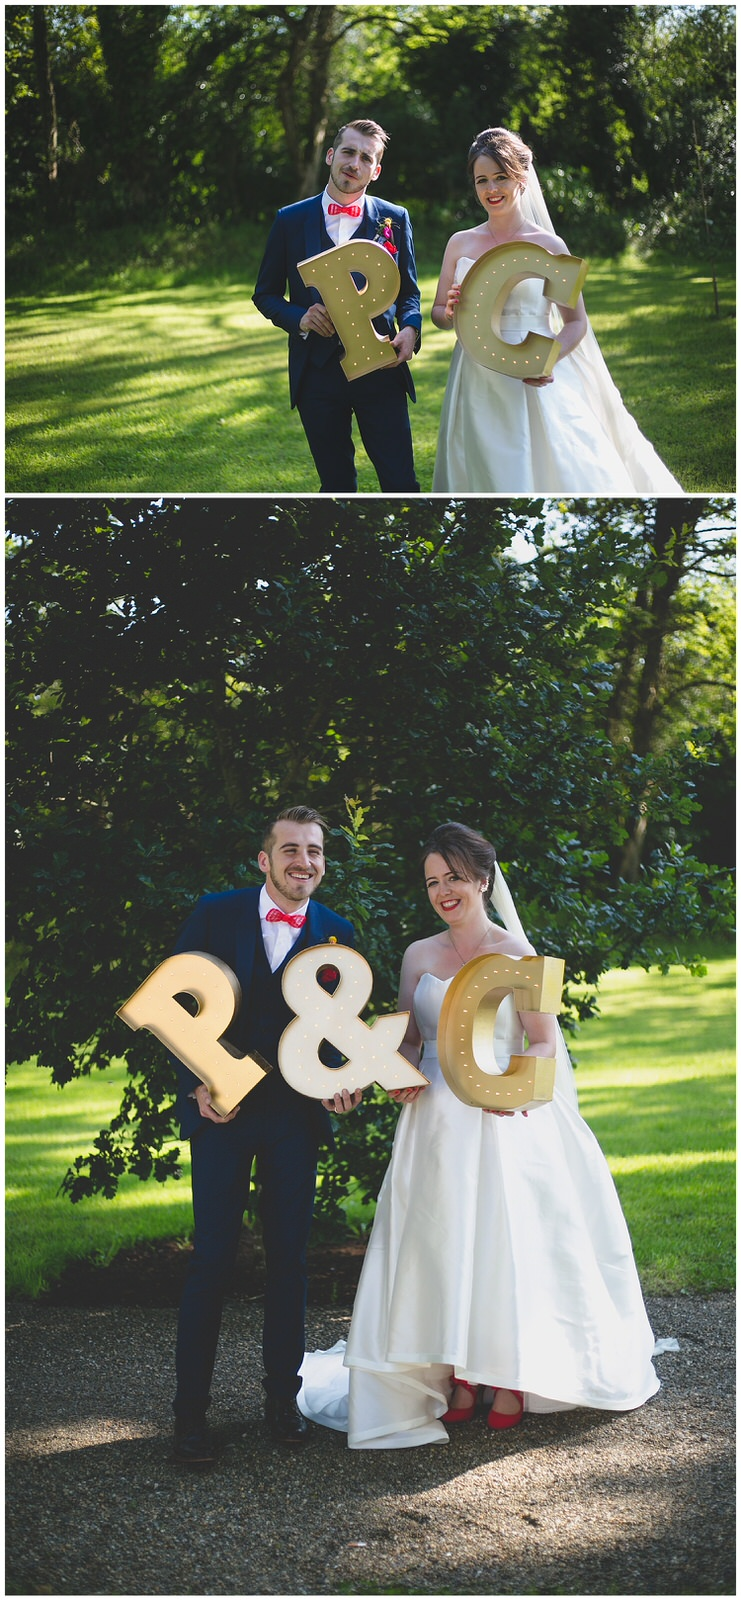 Husband & Wife laugh holding Light-up couple initial signs